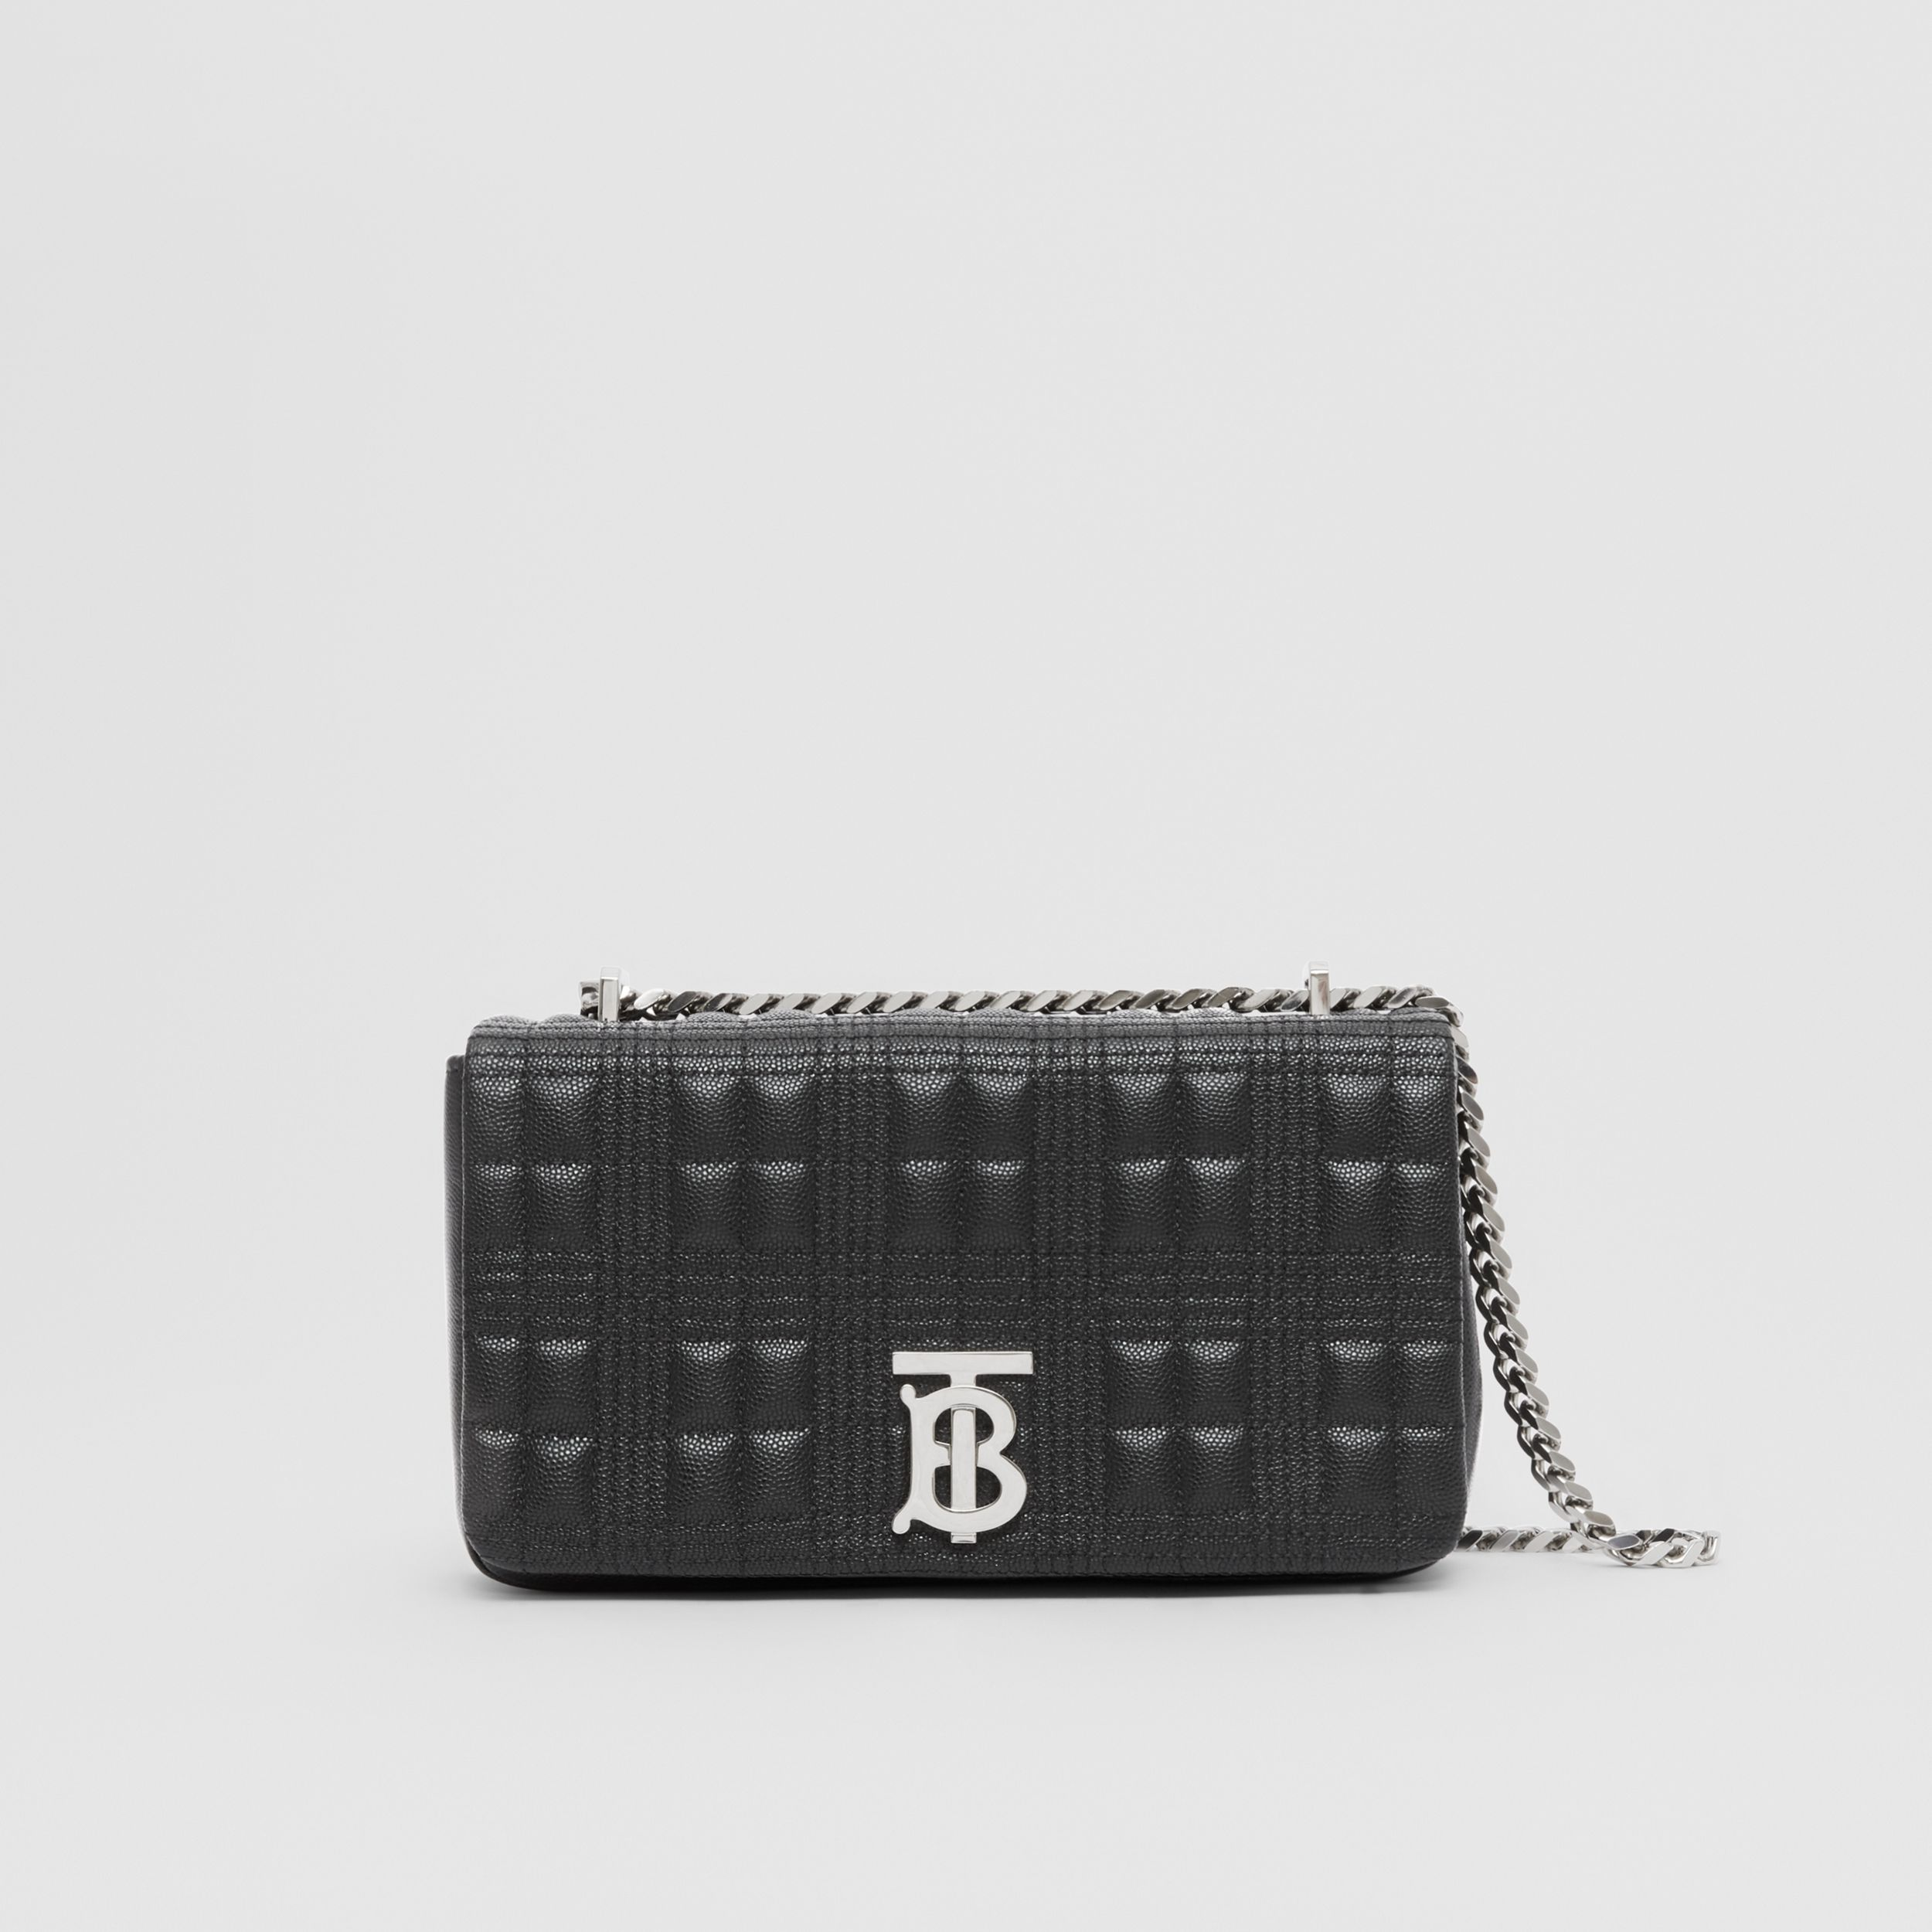 Small Quilted Grainy Leather Lola Bag in Black | Burberry - 1